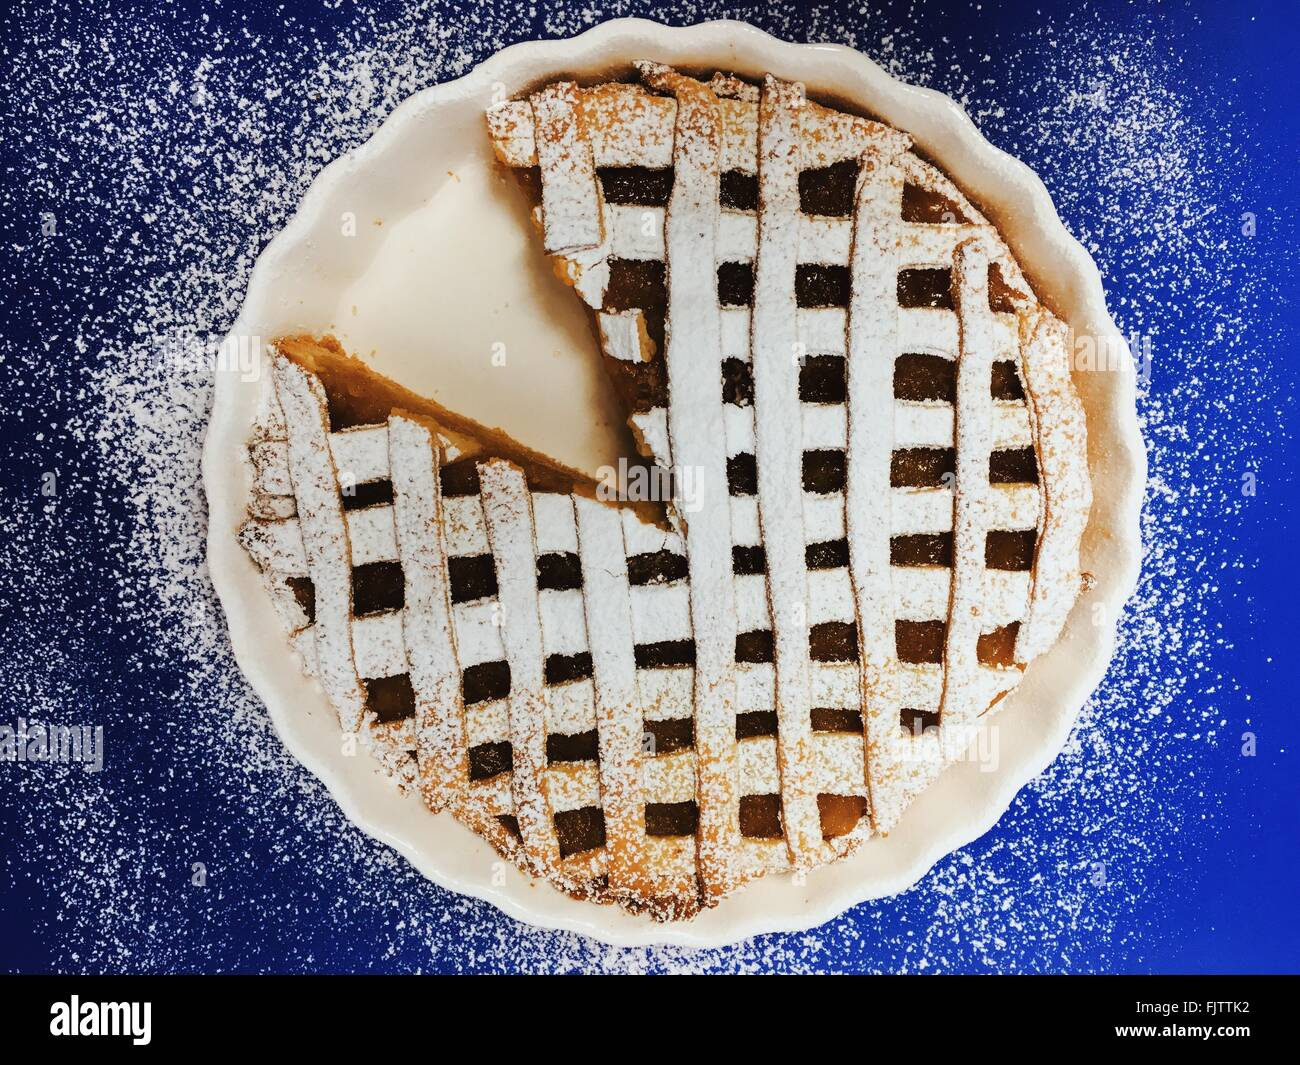 Close-Up Of Sweet Pie With One Slice Removed - Stock Image